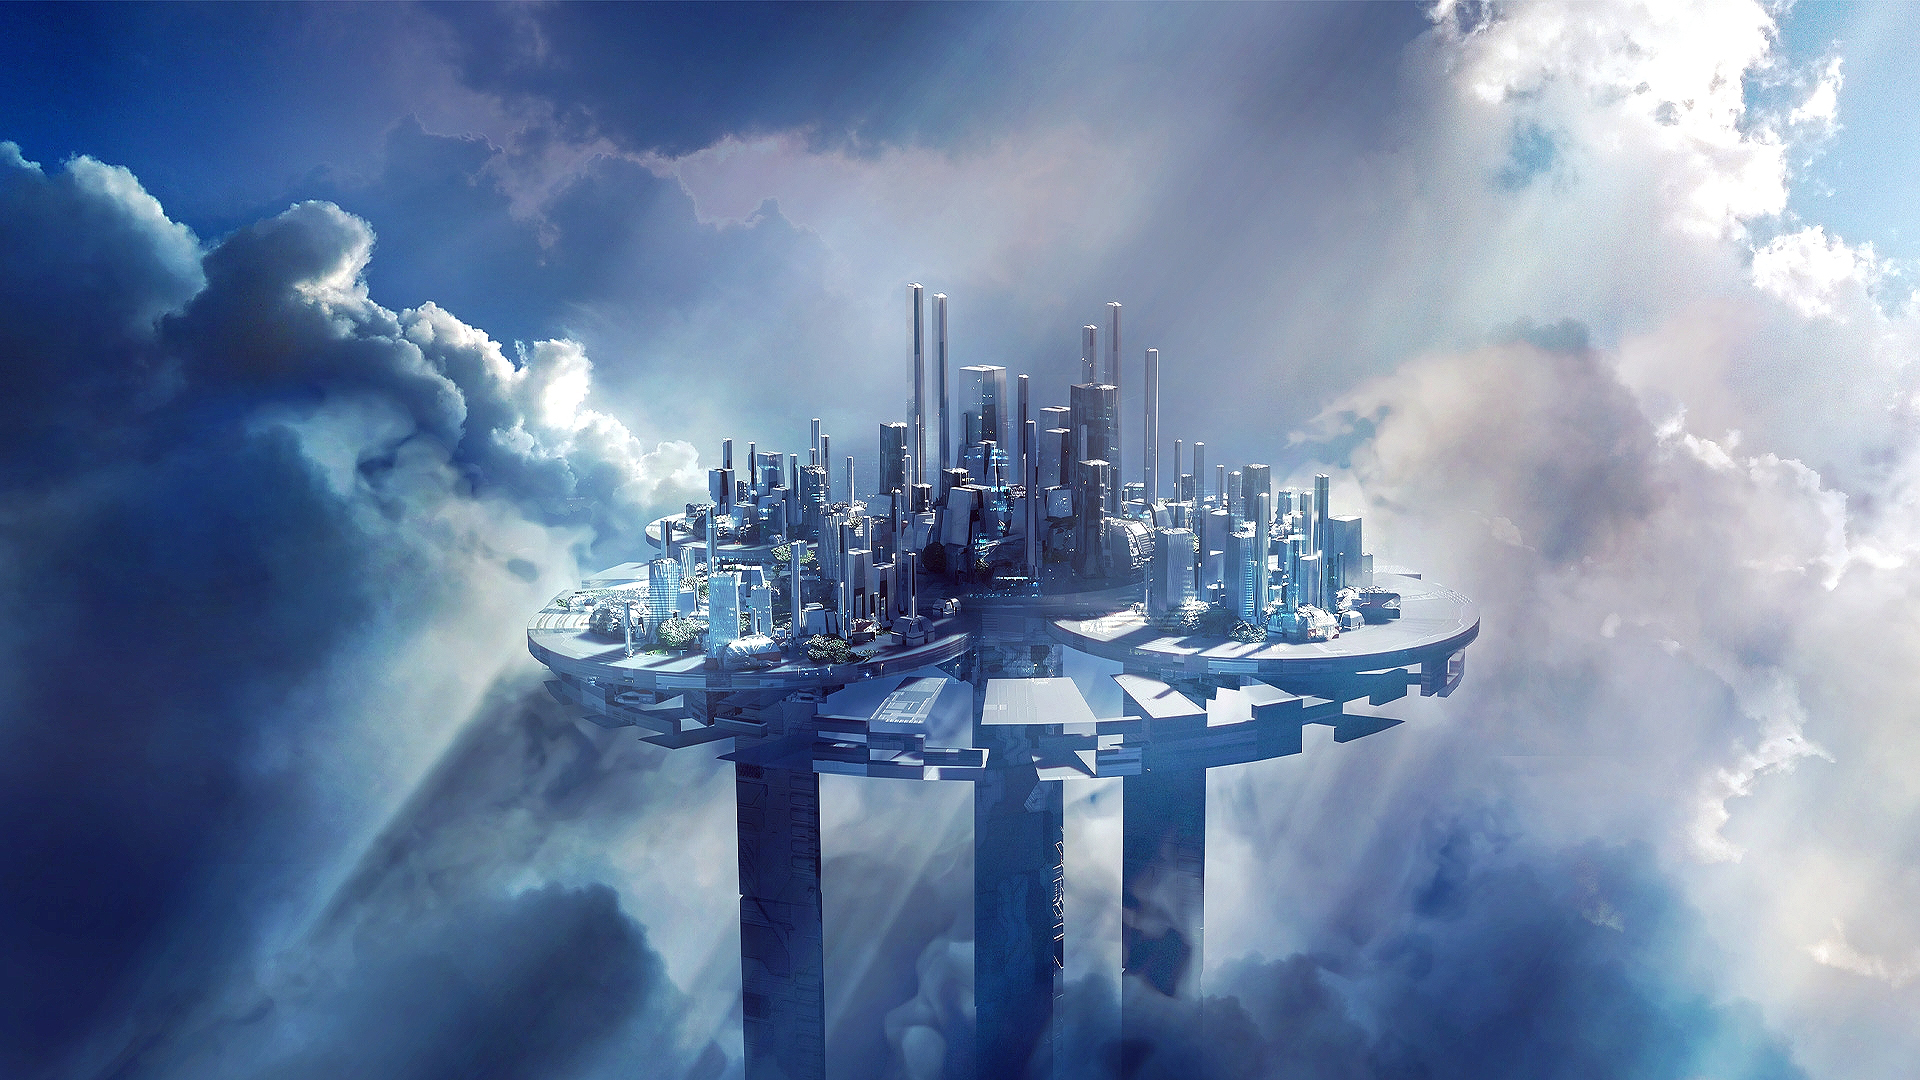 Atmospheric research city